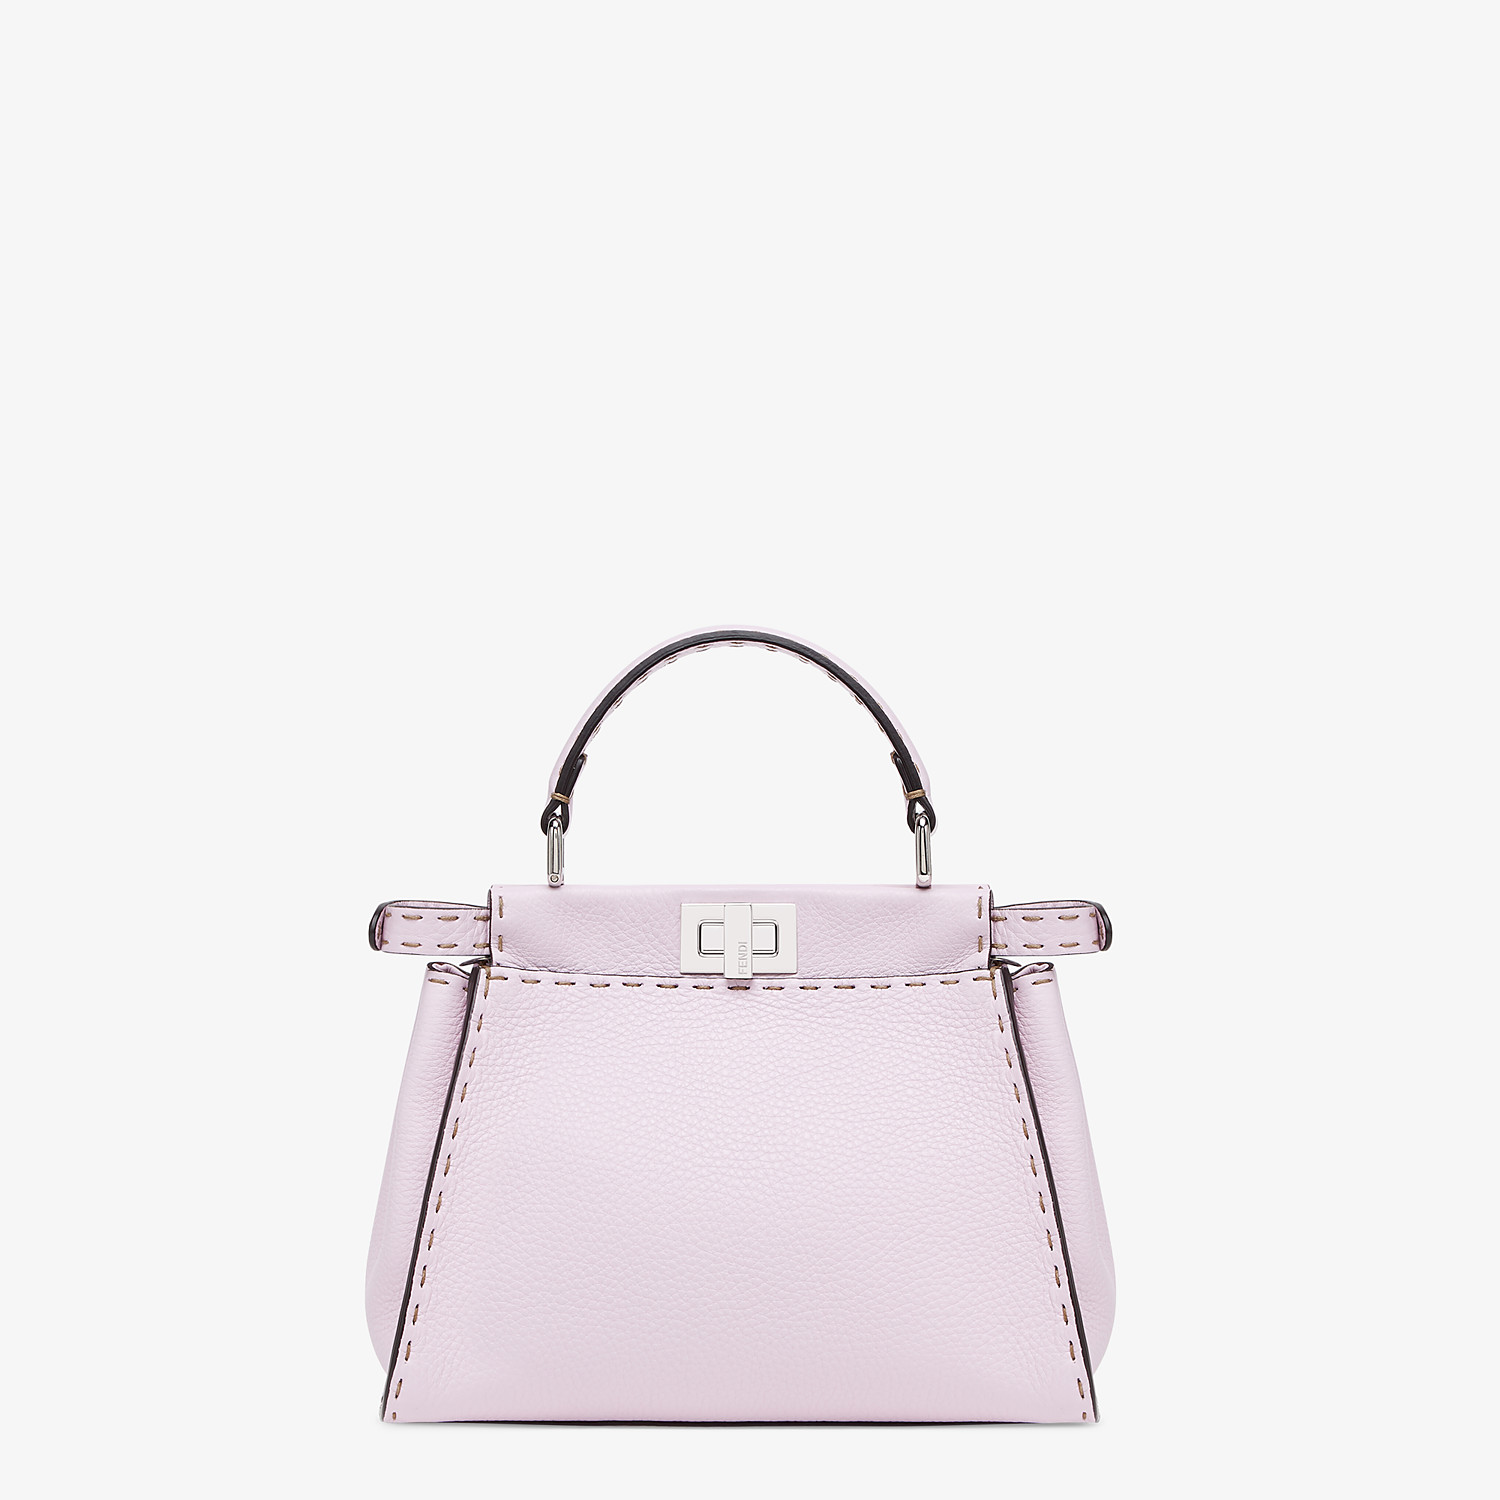 FENDI PEEKABOO ICONIC MINI - Lilac Selleria bag - view 4 detail